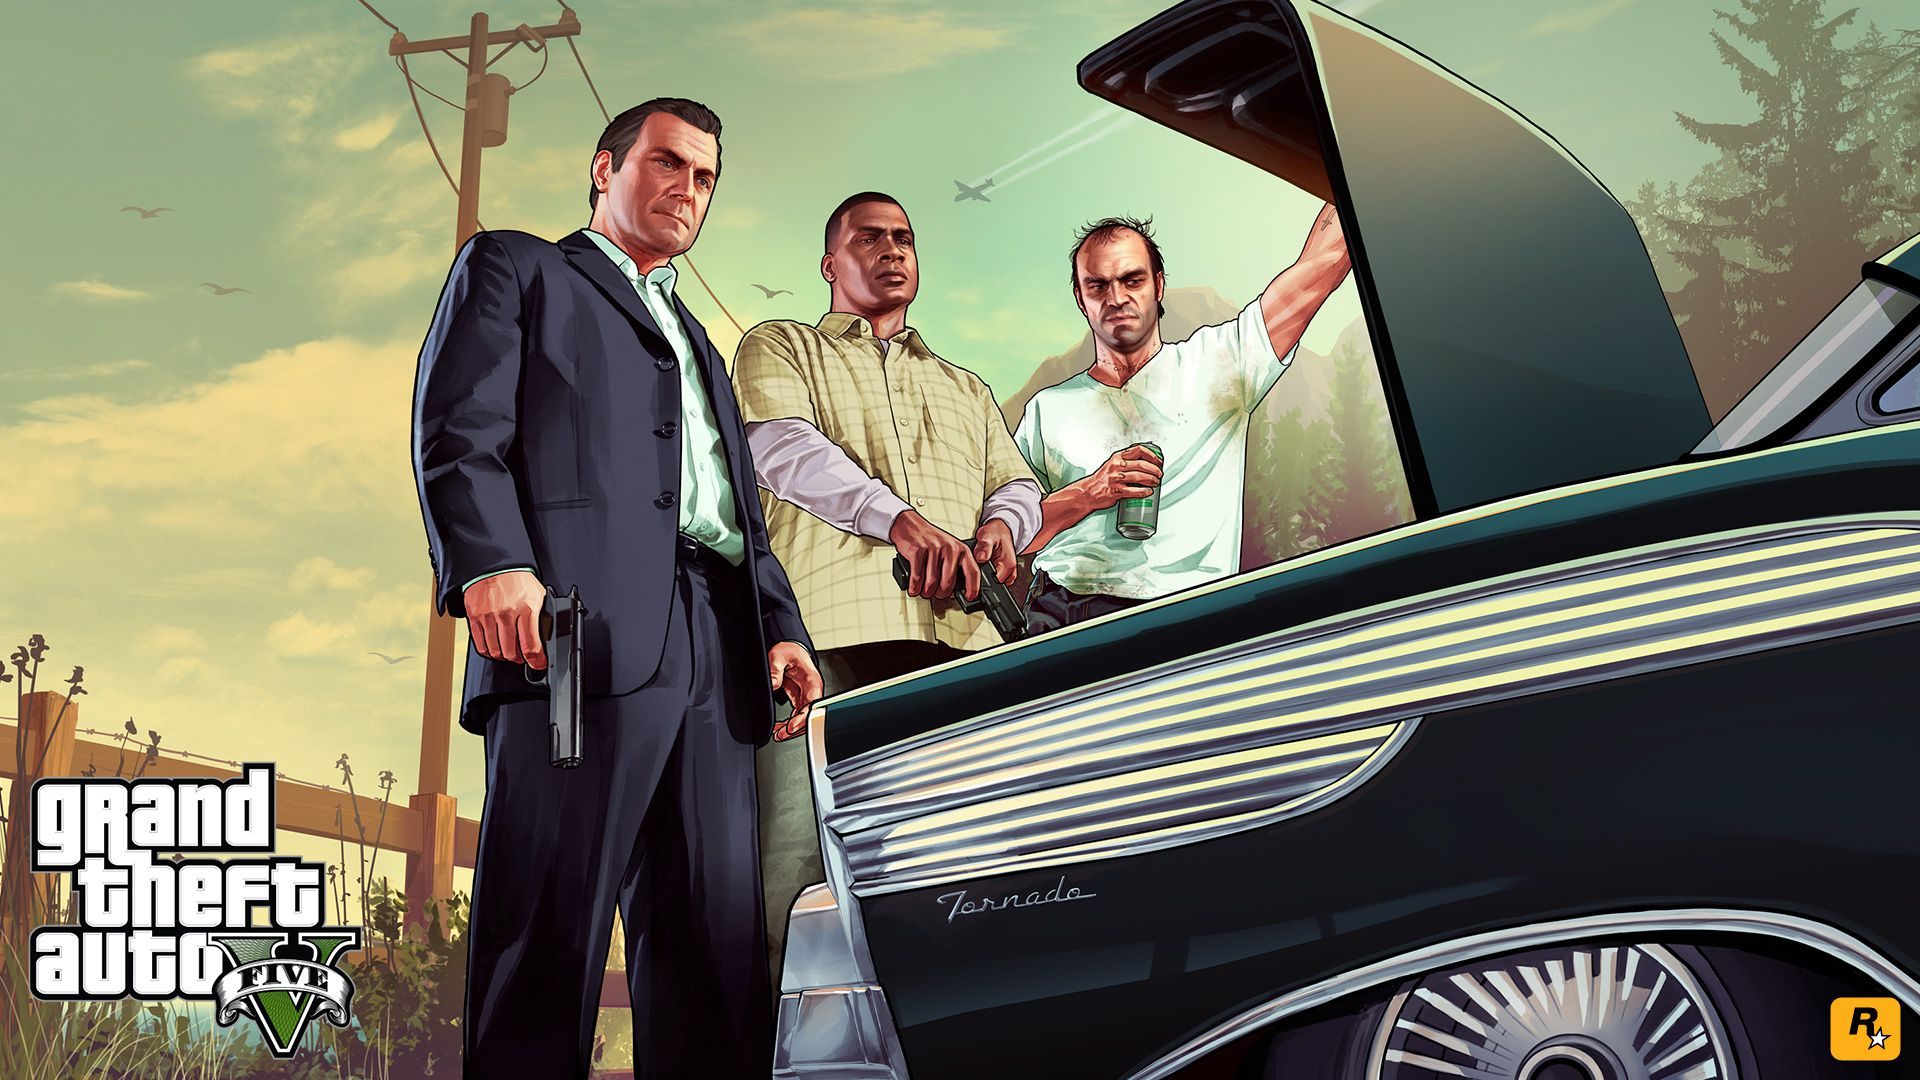 grand theft auto lawsuit essay A judge has thrown out lindsay lohan's lawsuit claiming the makers of grand theft auto v v lawsuit has been tossed out because the game.